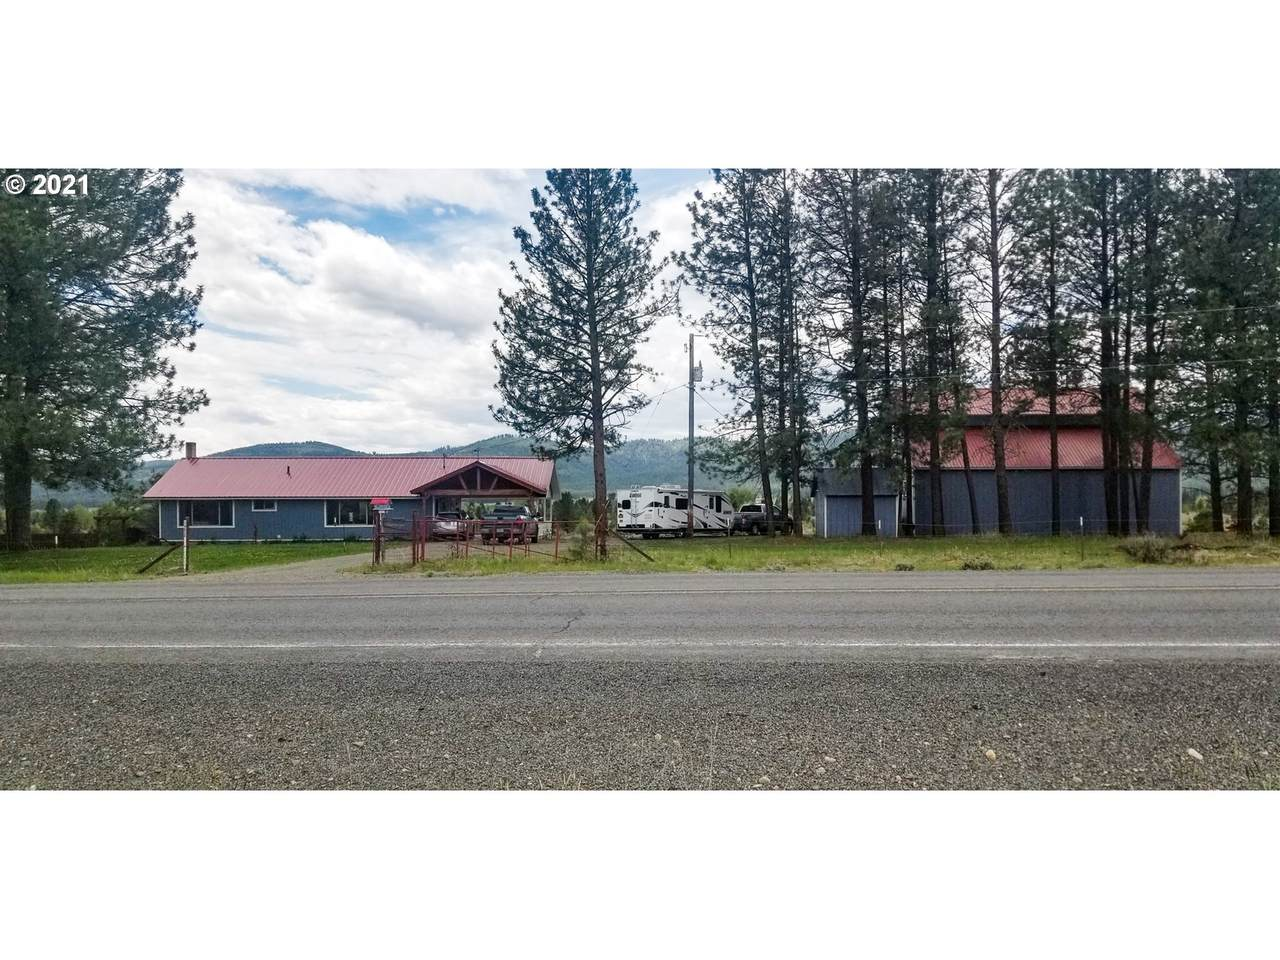 14850 Sumpter Stage Hwy - Photo 1